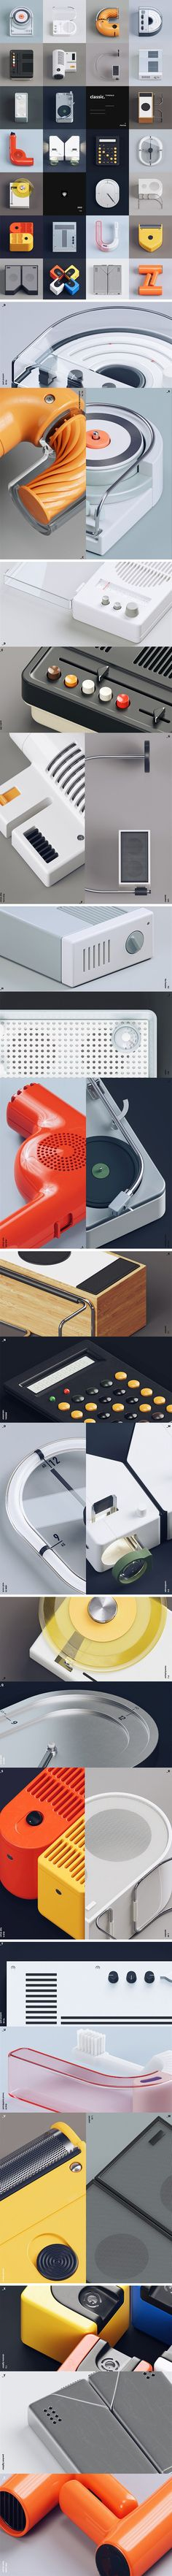 Designer Gao Yang decided to pay homage to Braun's legacy in the form of type! Taking real products from Braun's vast catalog, Gao made small alterations to them (you can see which products he took by zooming into the close-up renders), maintaining their Braun-ness but turning products into characters… which works pretty well because Braun's products do have character.